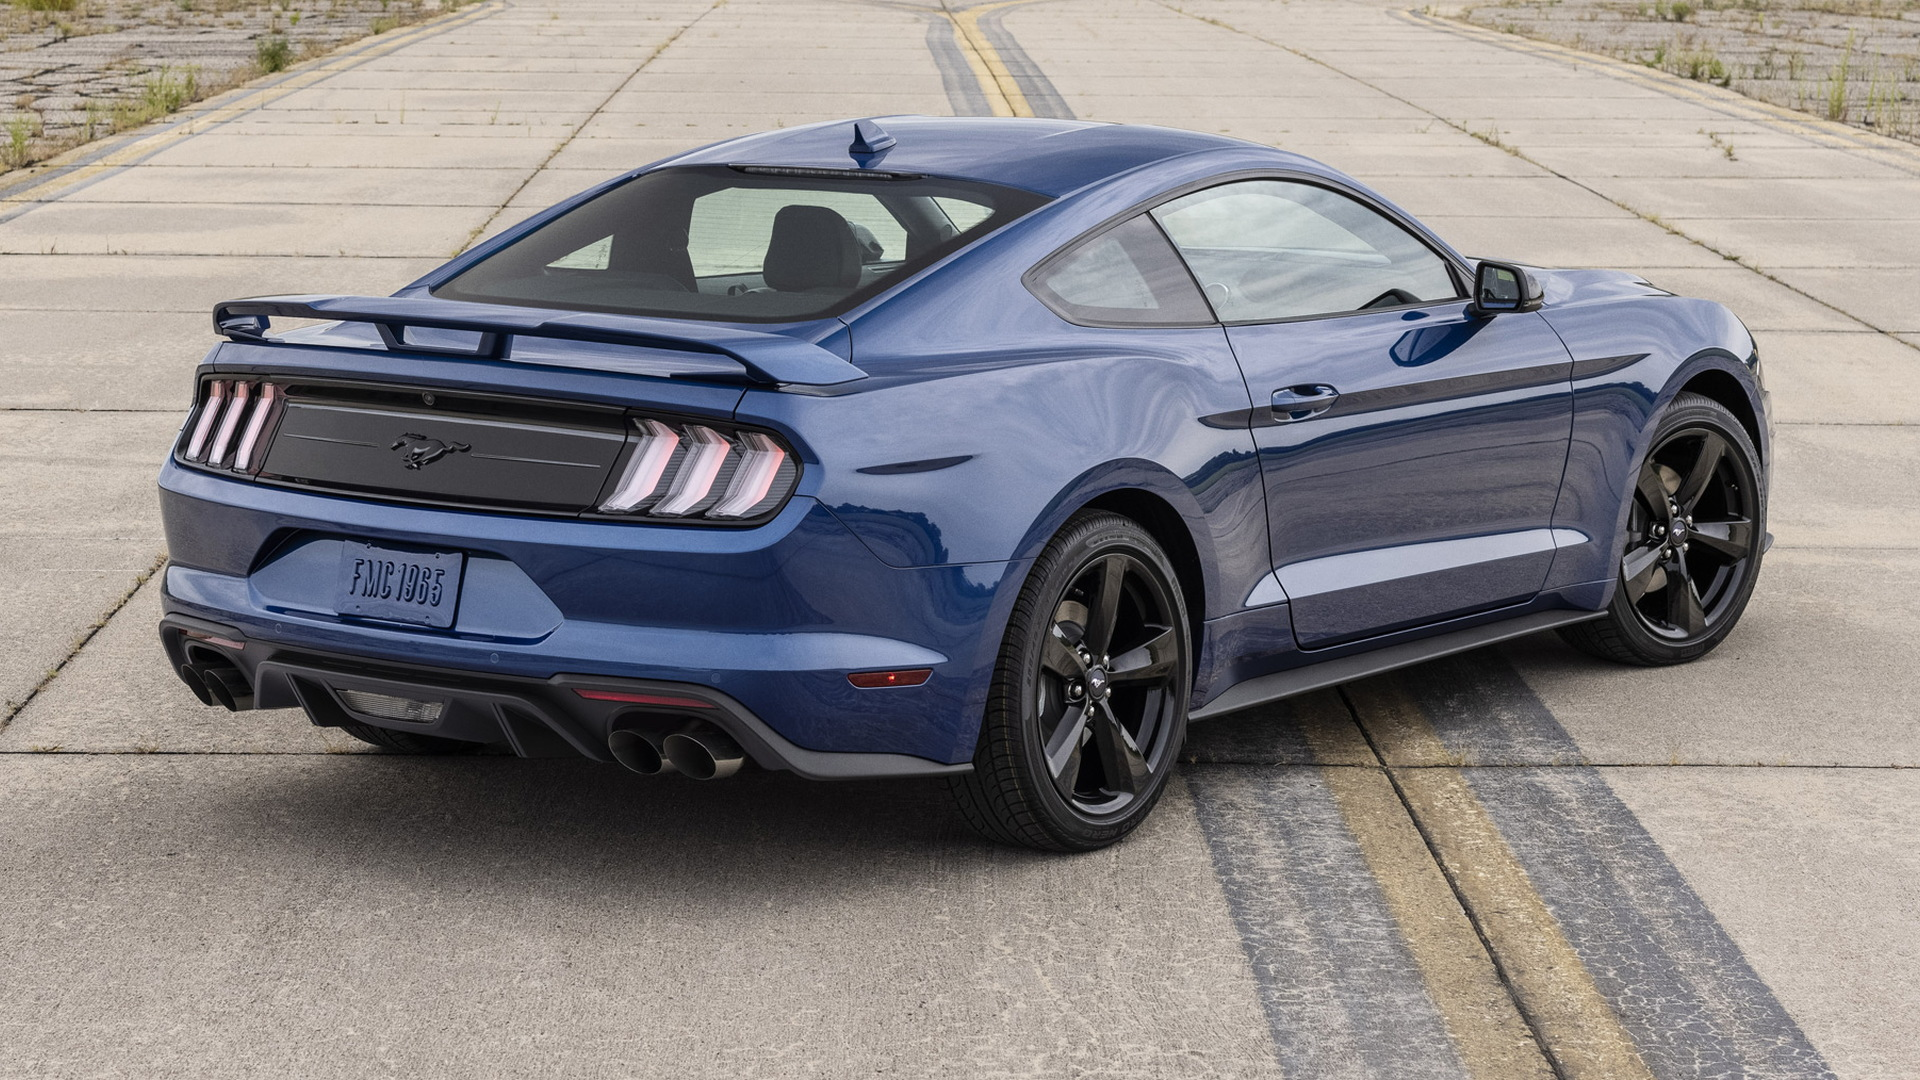 2022 Ford Mustang EcoBoost Stealth Edition